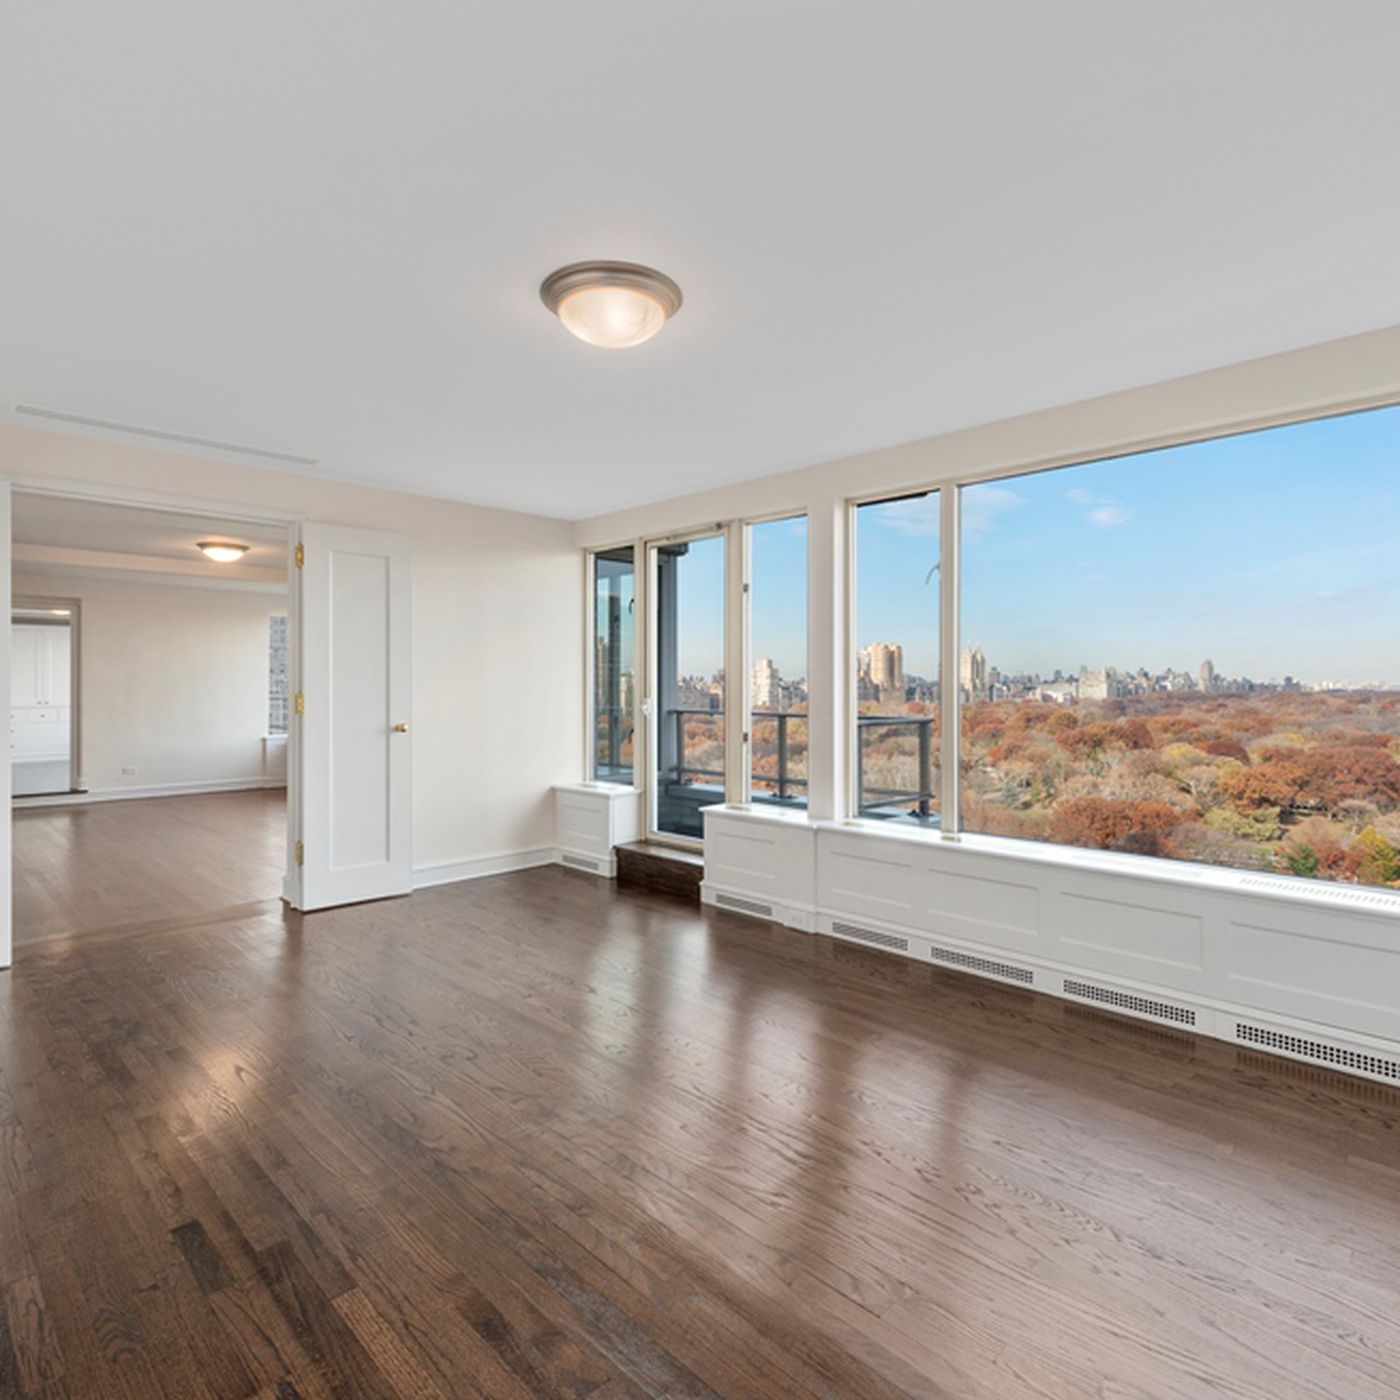 Lady Gaga's former Central Park penthouse is now a $33K/month rental  (updated) - Curbed NY